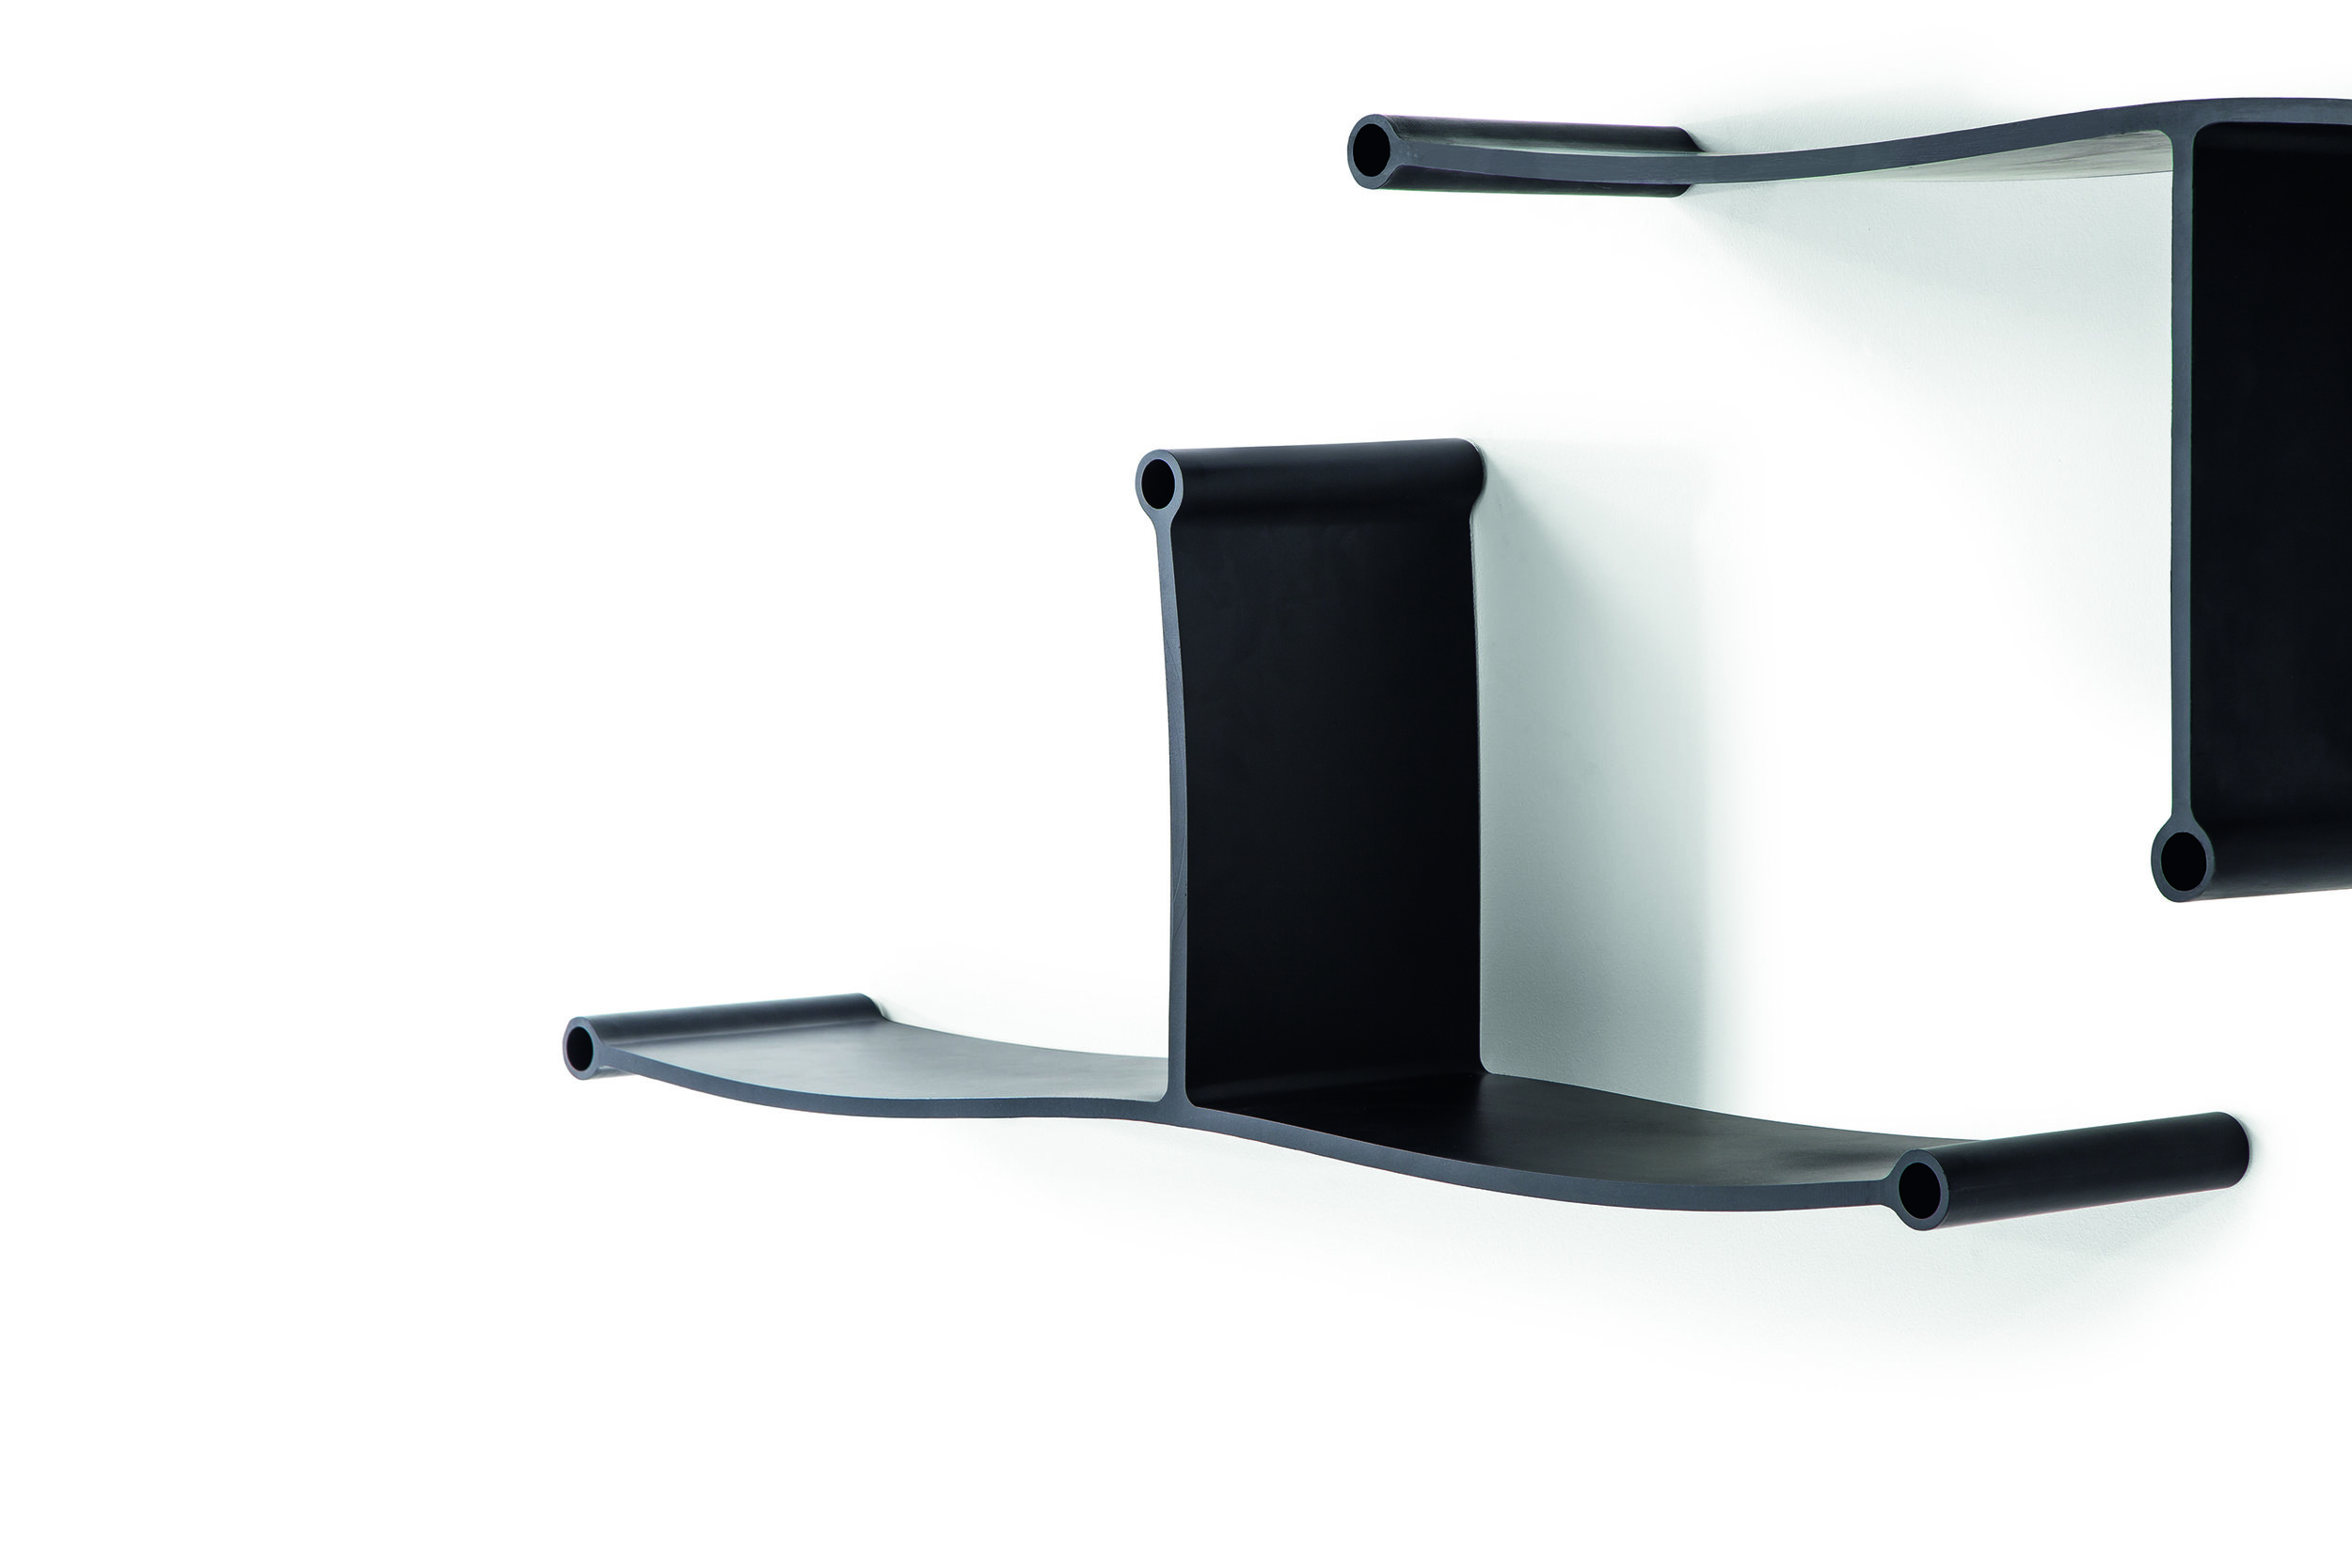 The Baleno system designed by Ronan and Erwan Bouroullec for Cassina.